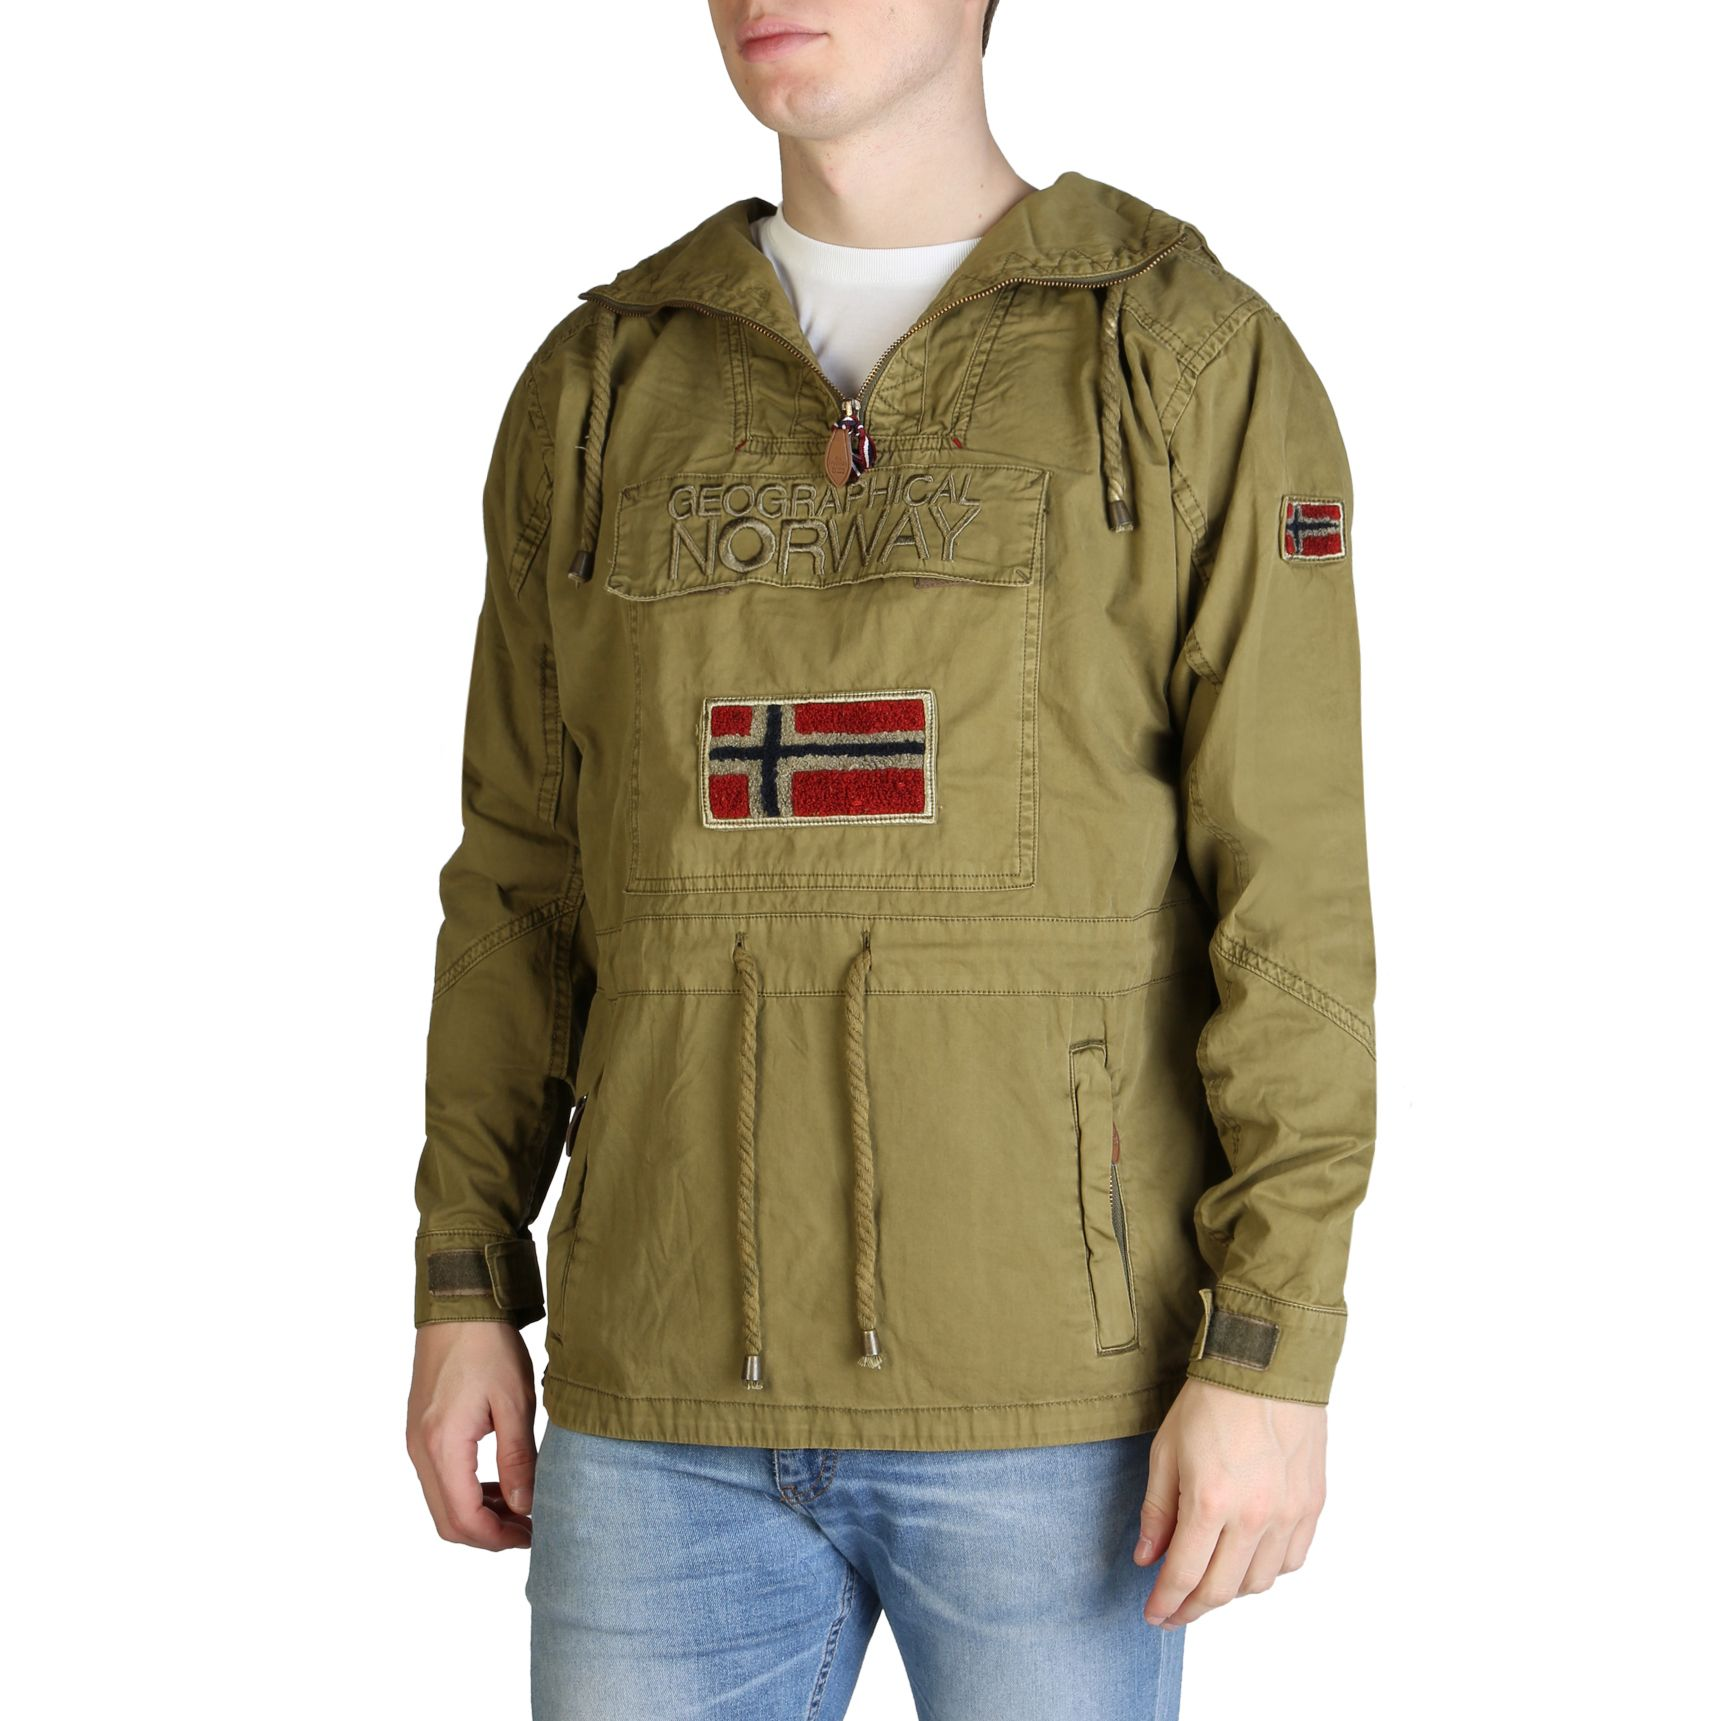 Geographical Norway – Chomer_man